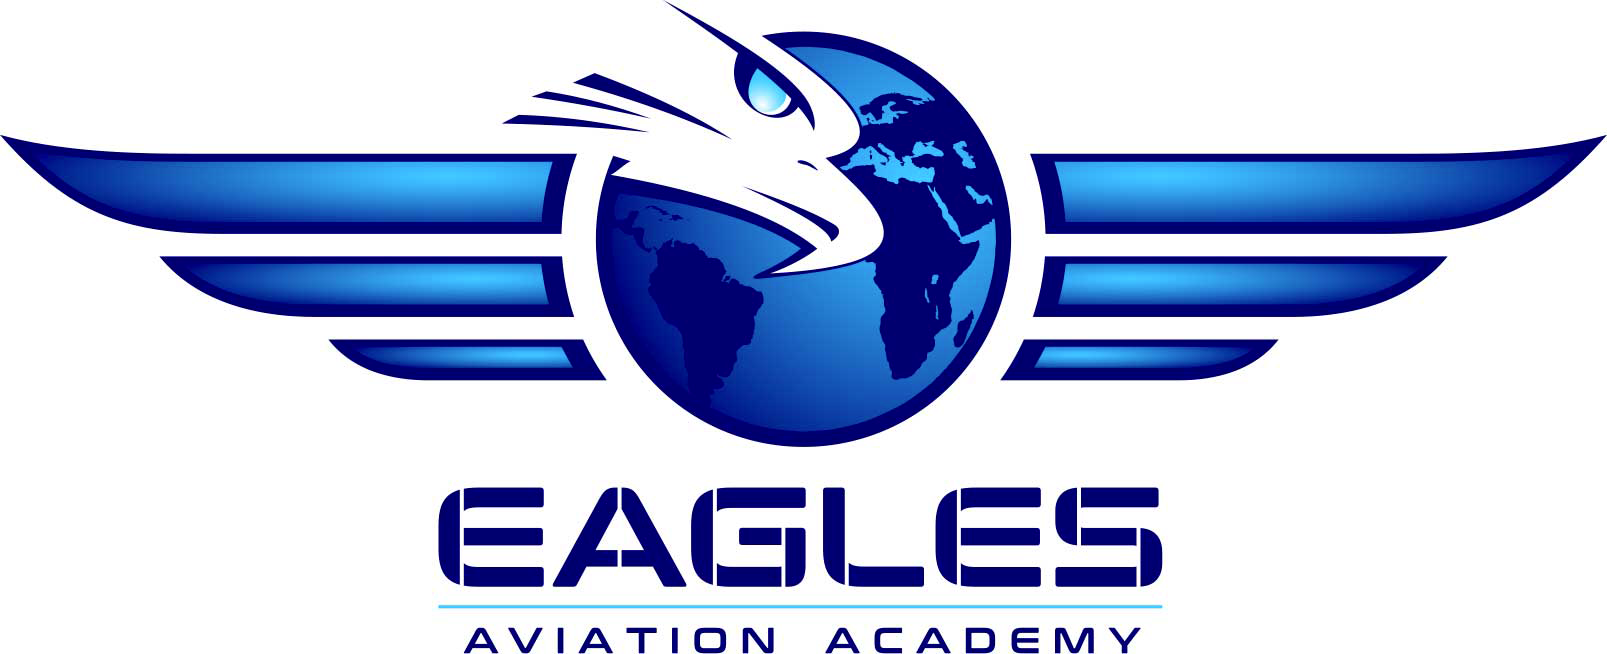 EAGLES AVIATION ACADEMY - SCUOLA DI VOLO ITALIA